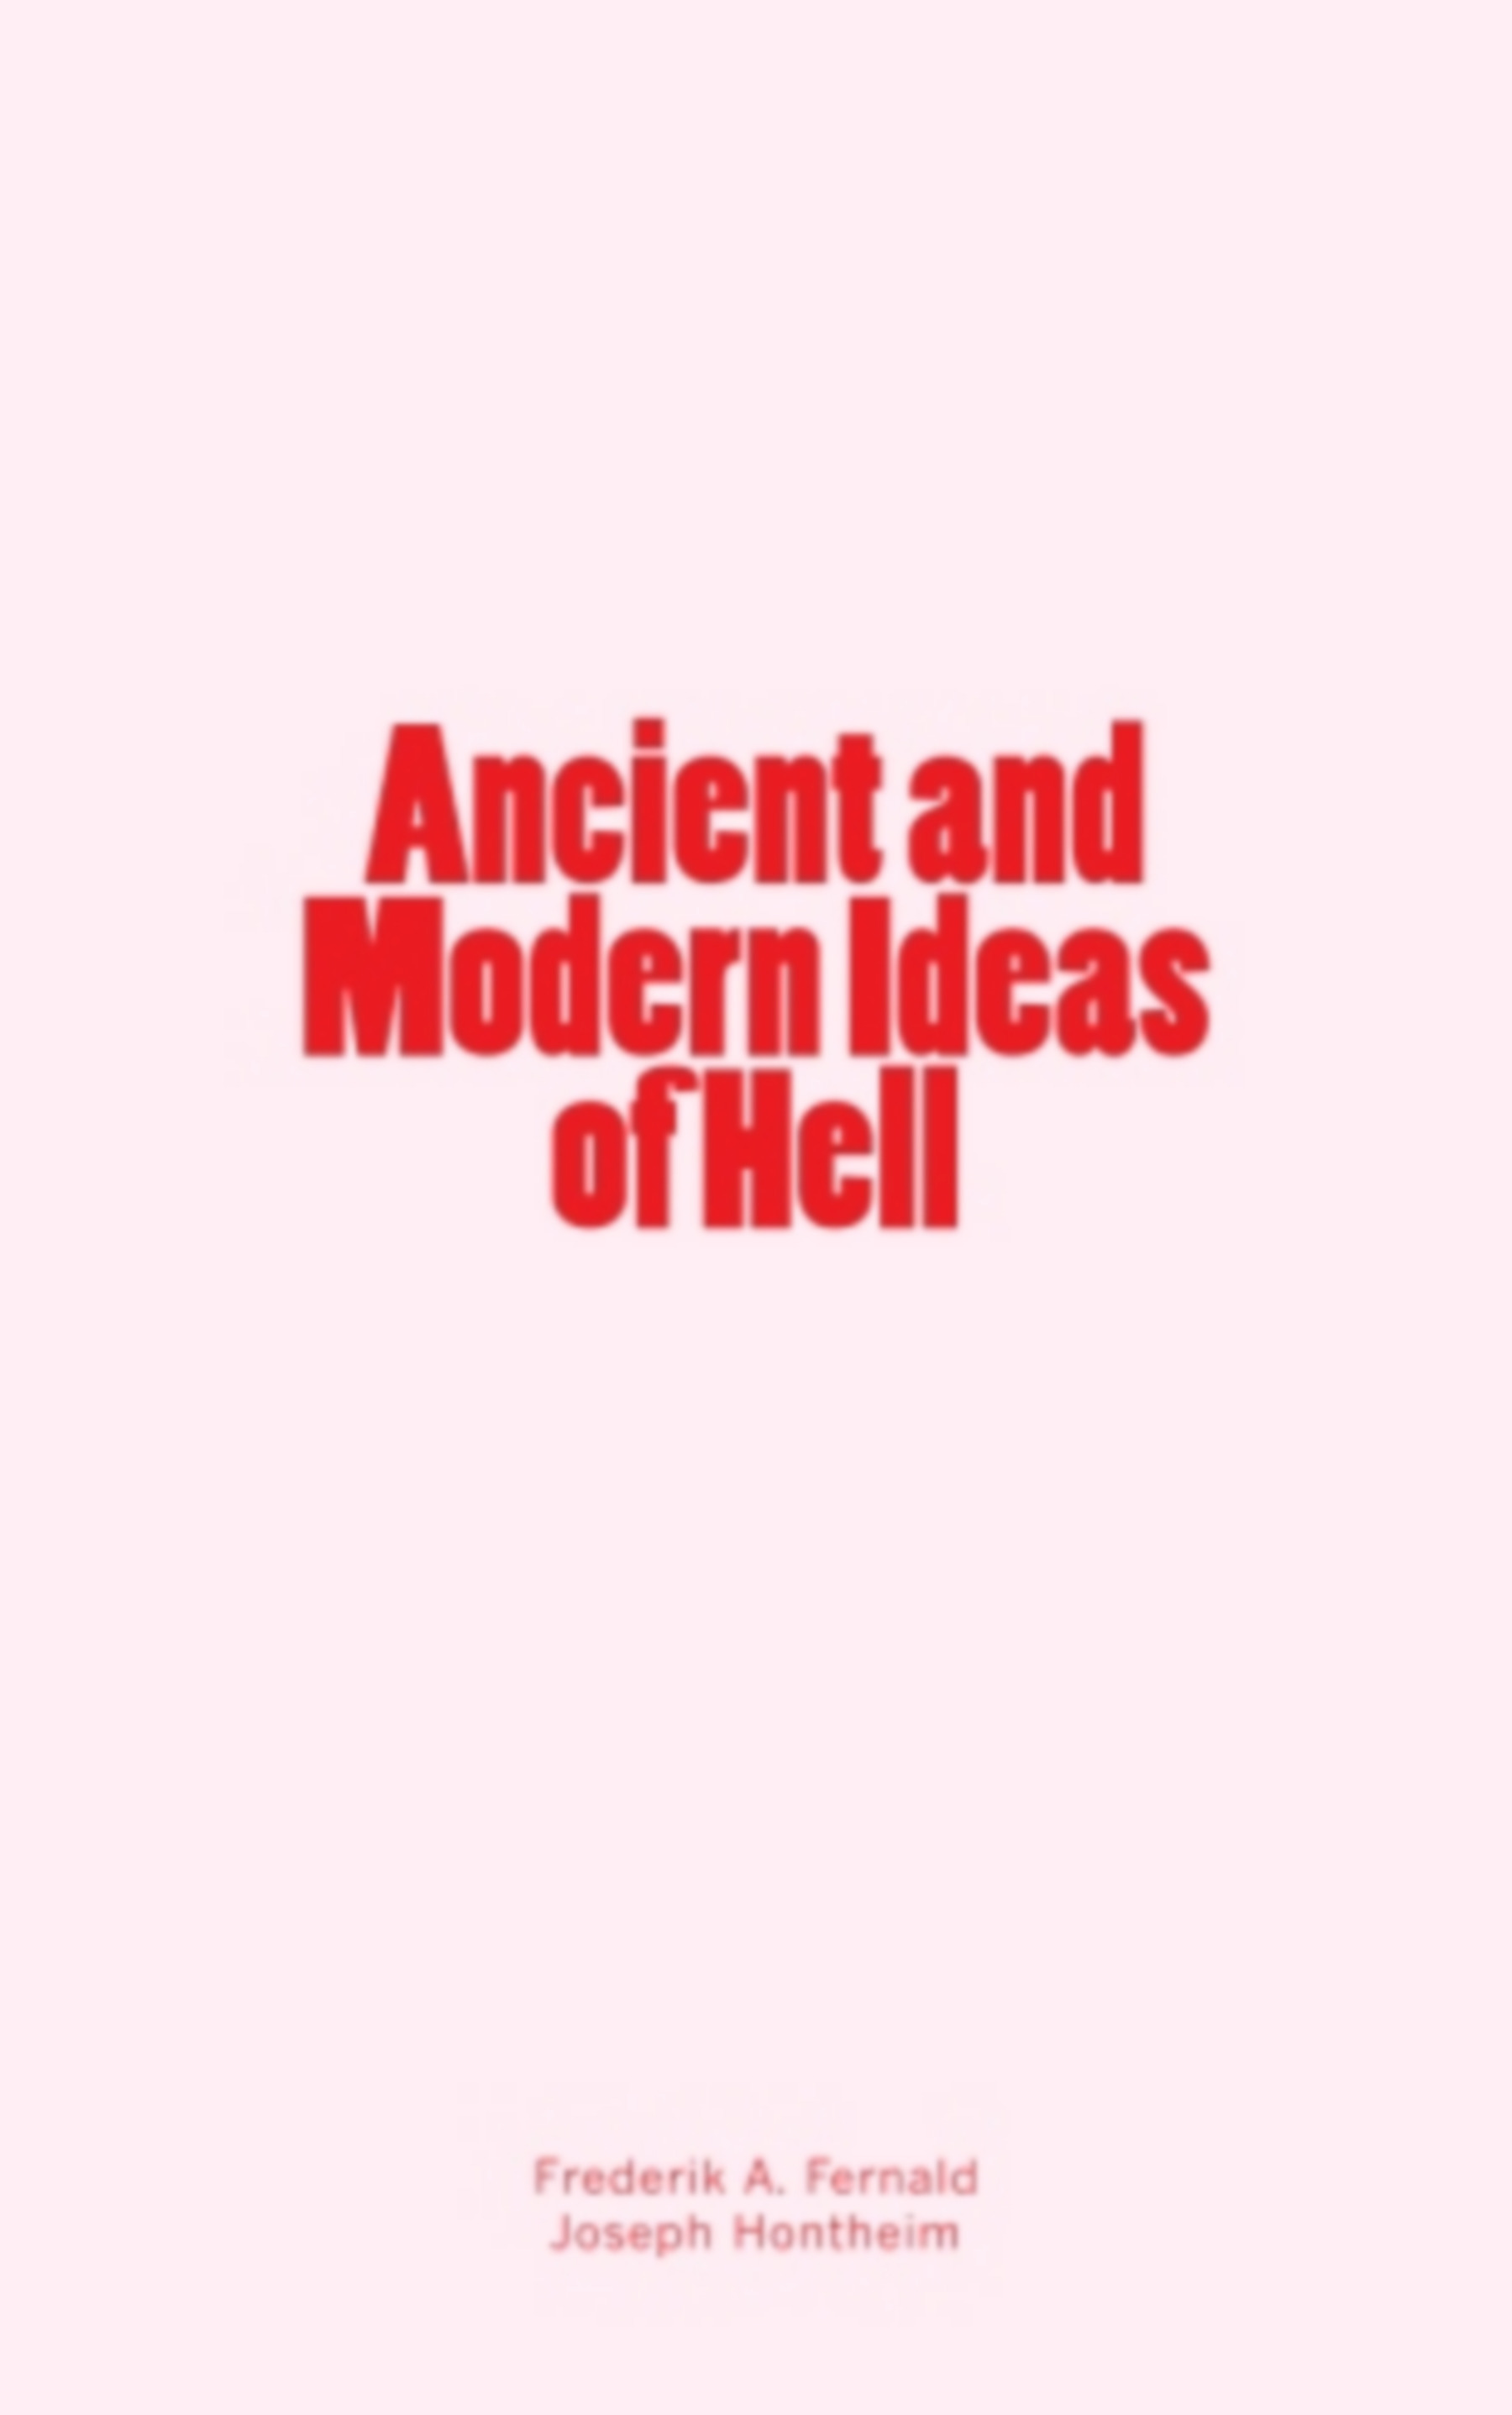 Ancient and Modern Ideas of Hell